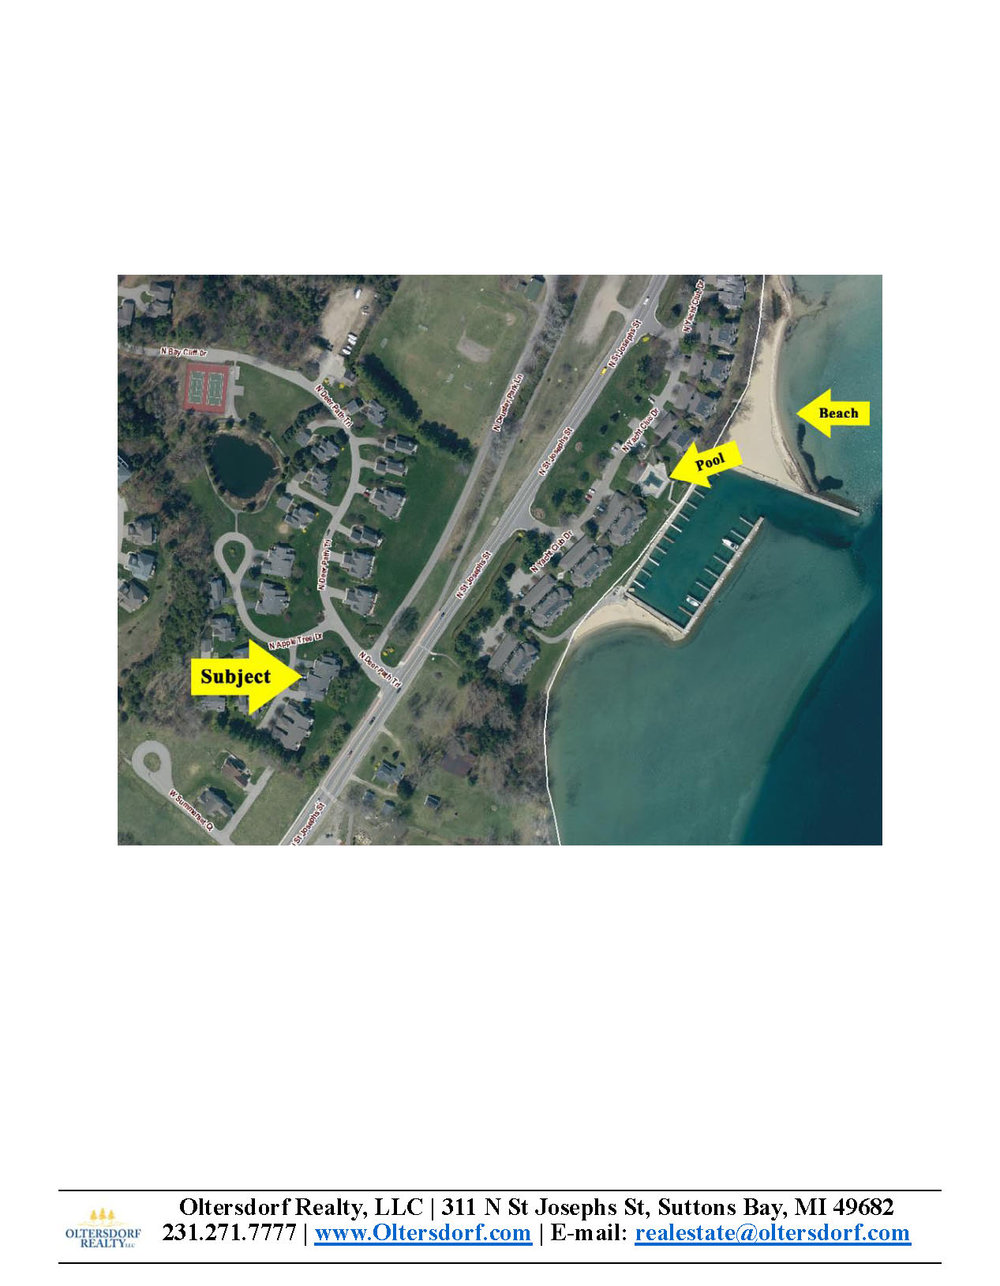 725 N Apple Tree Drive #3, Suttons Bay – FOR SALE by Oltersdorf Realty LLC (Marketing Packet) (9).jpg